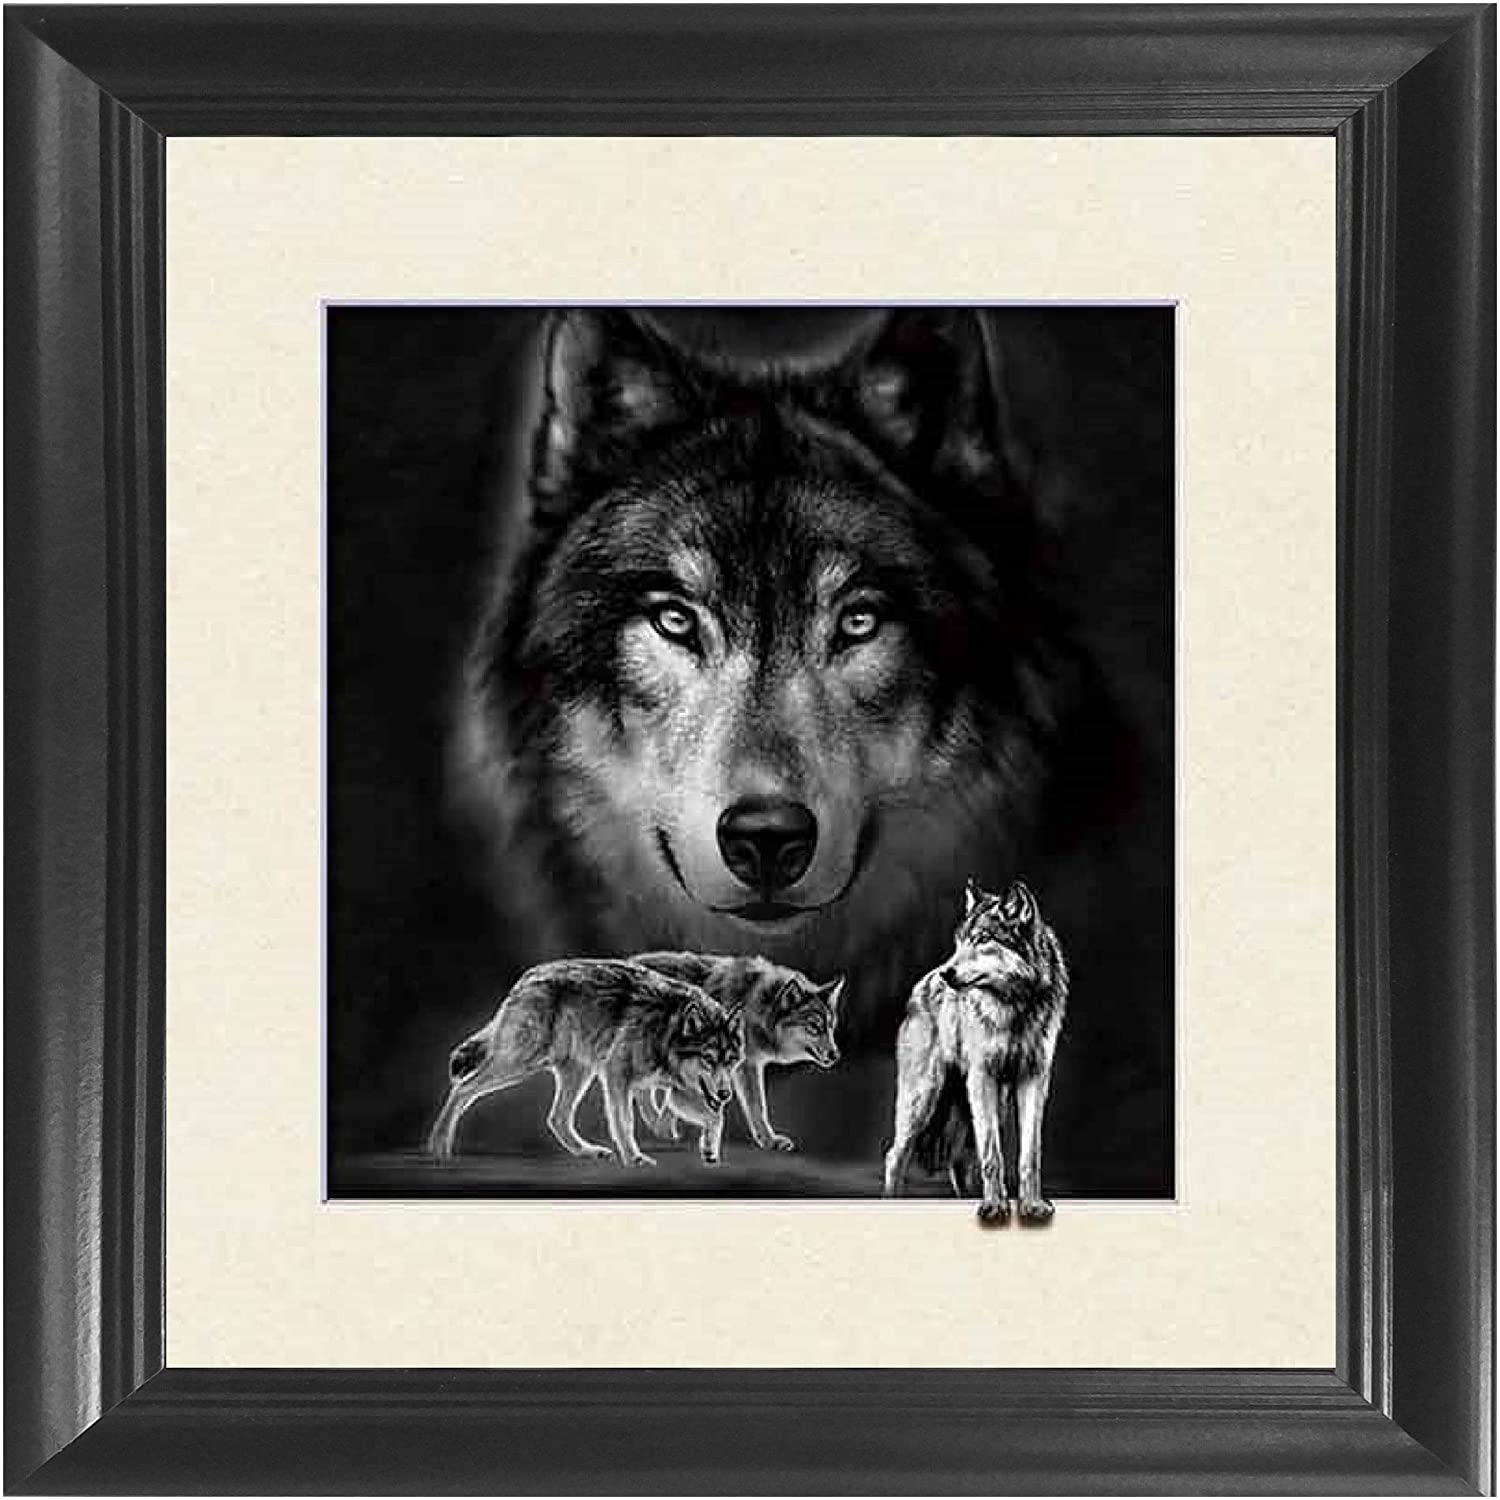 Wolf 5D / 3D Poster Wall Art Decor Framed Print   18.5x18.5   Lenticular Posters & Pictures   Memorabilia Gifts for Guys & Girls Bedroom   Forest Wildlife & Hunting Animal Picture for Home Decorations